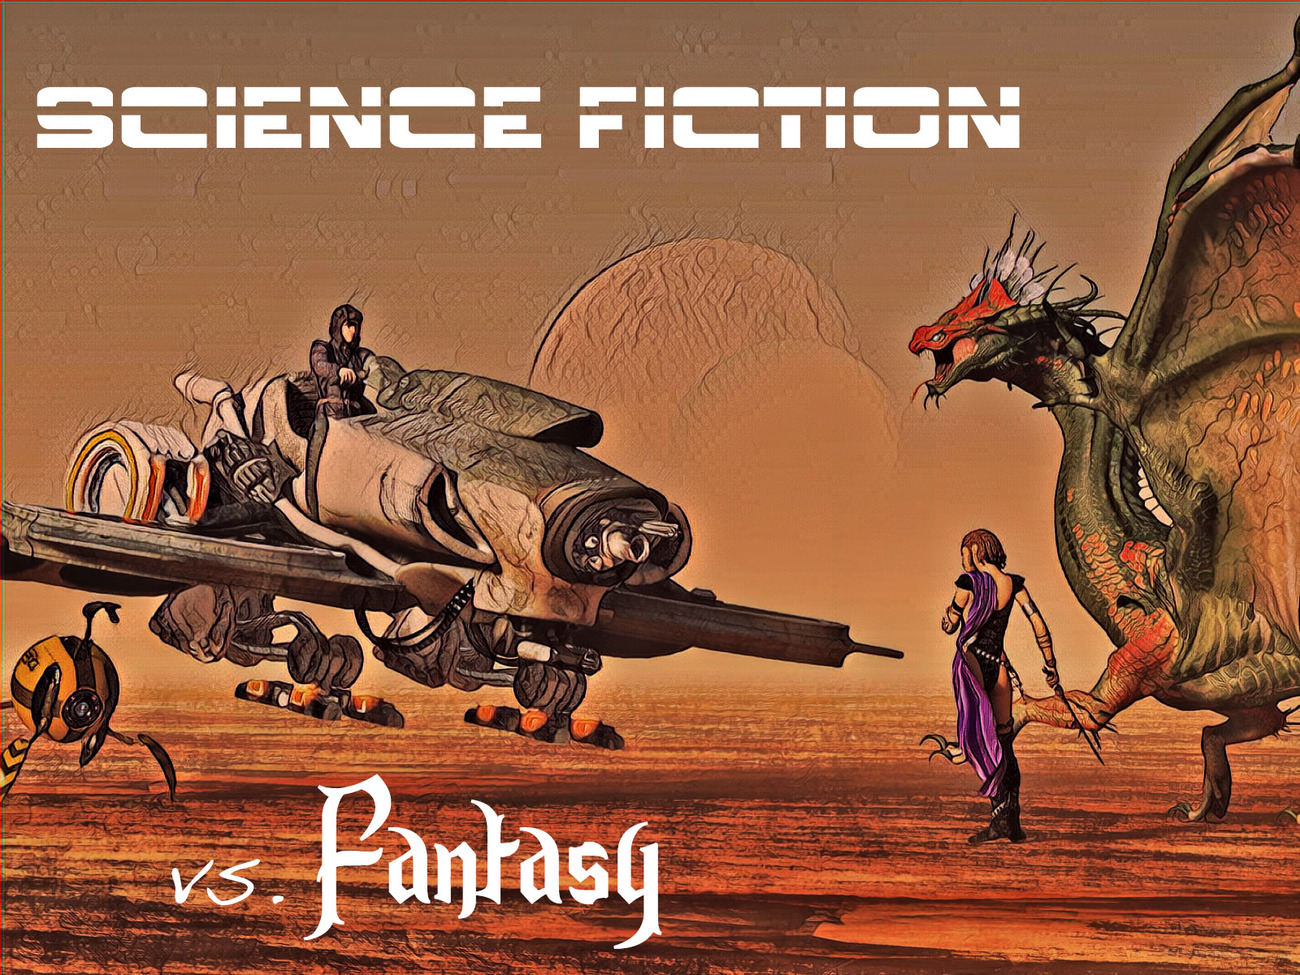 Science Fiction vs. Fantasy by rps53